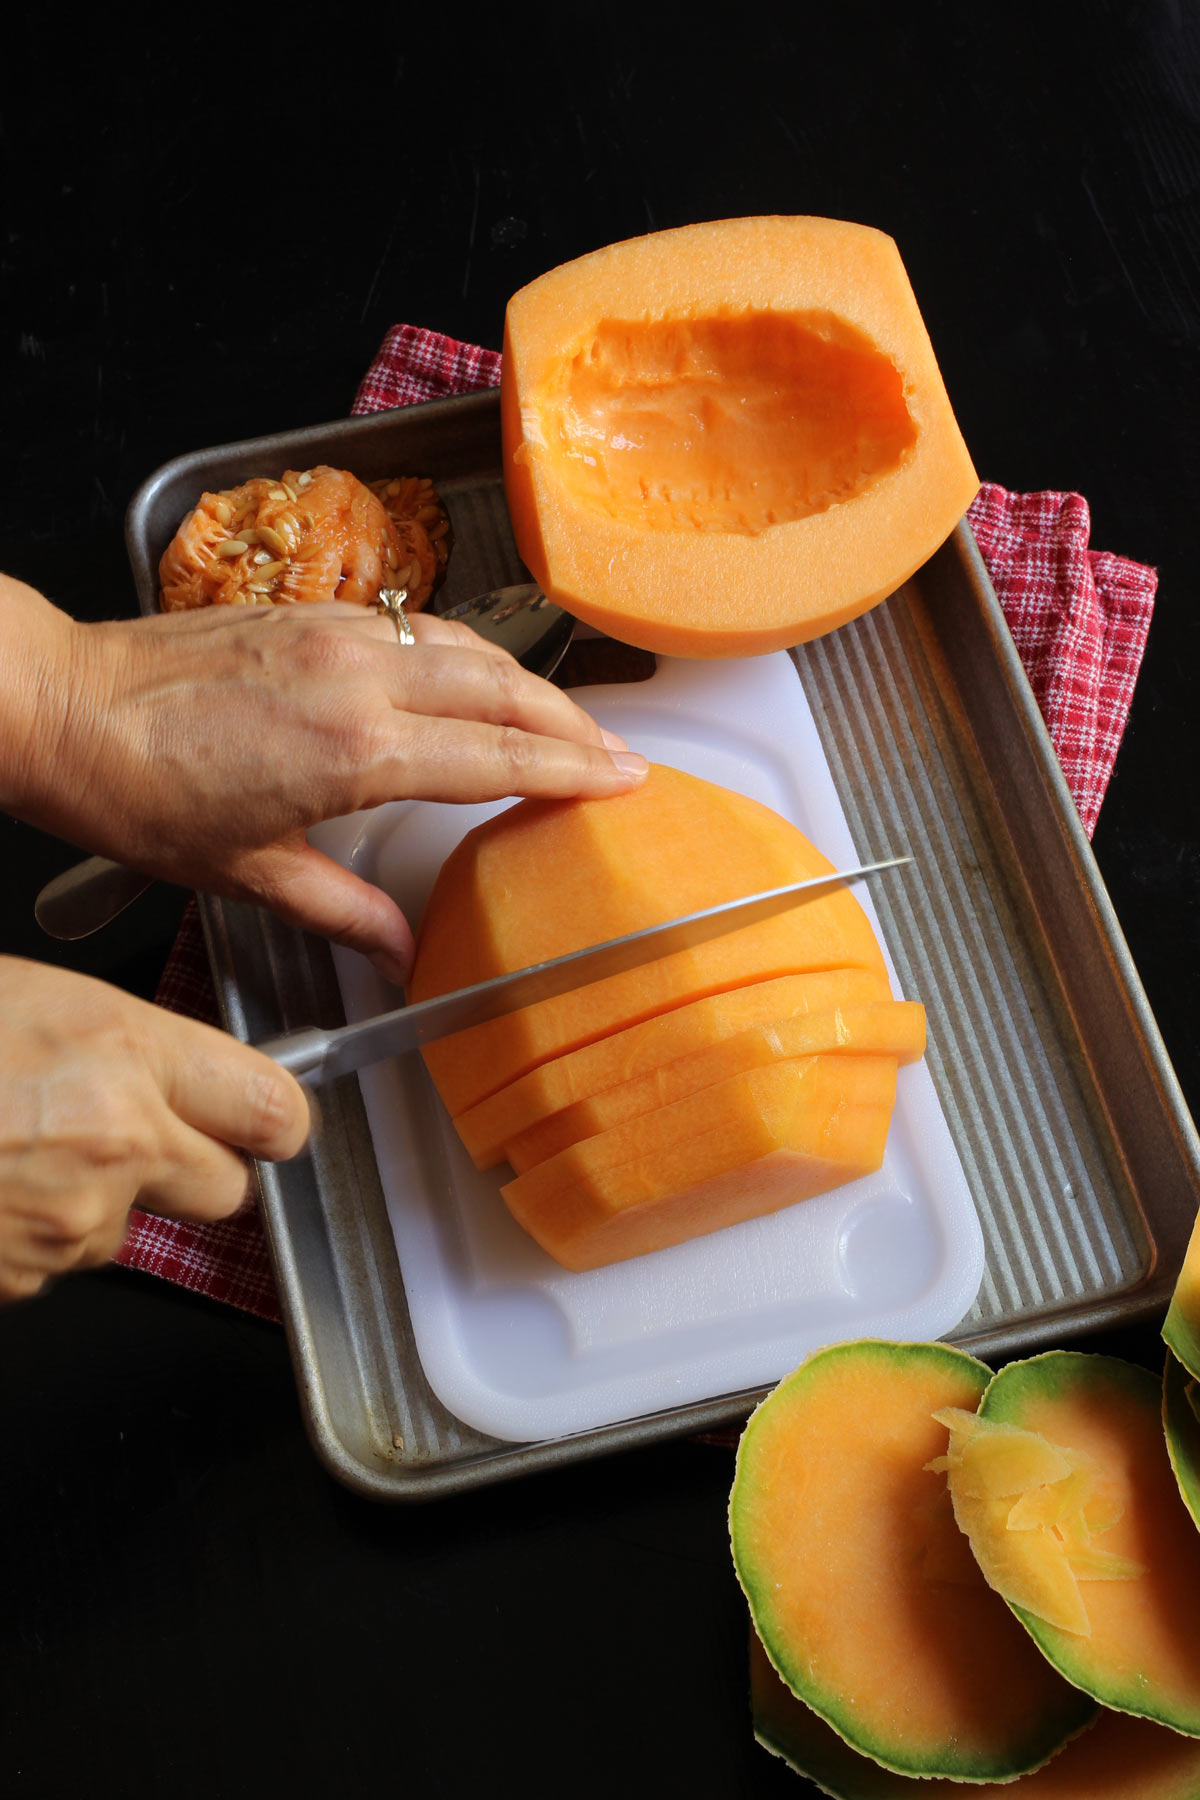 cutting cantaloupe half into slices on cutting board.